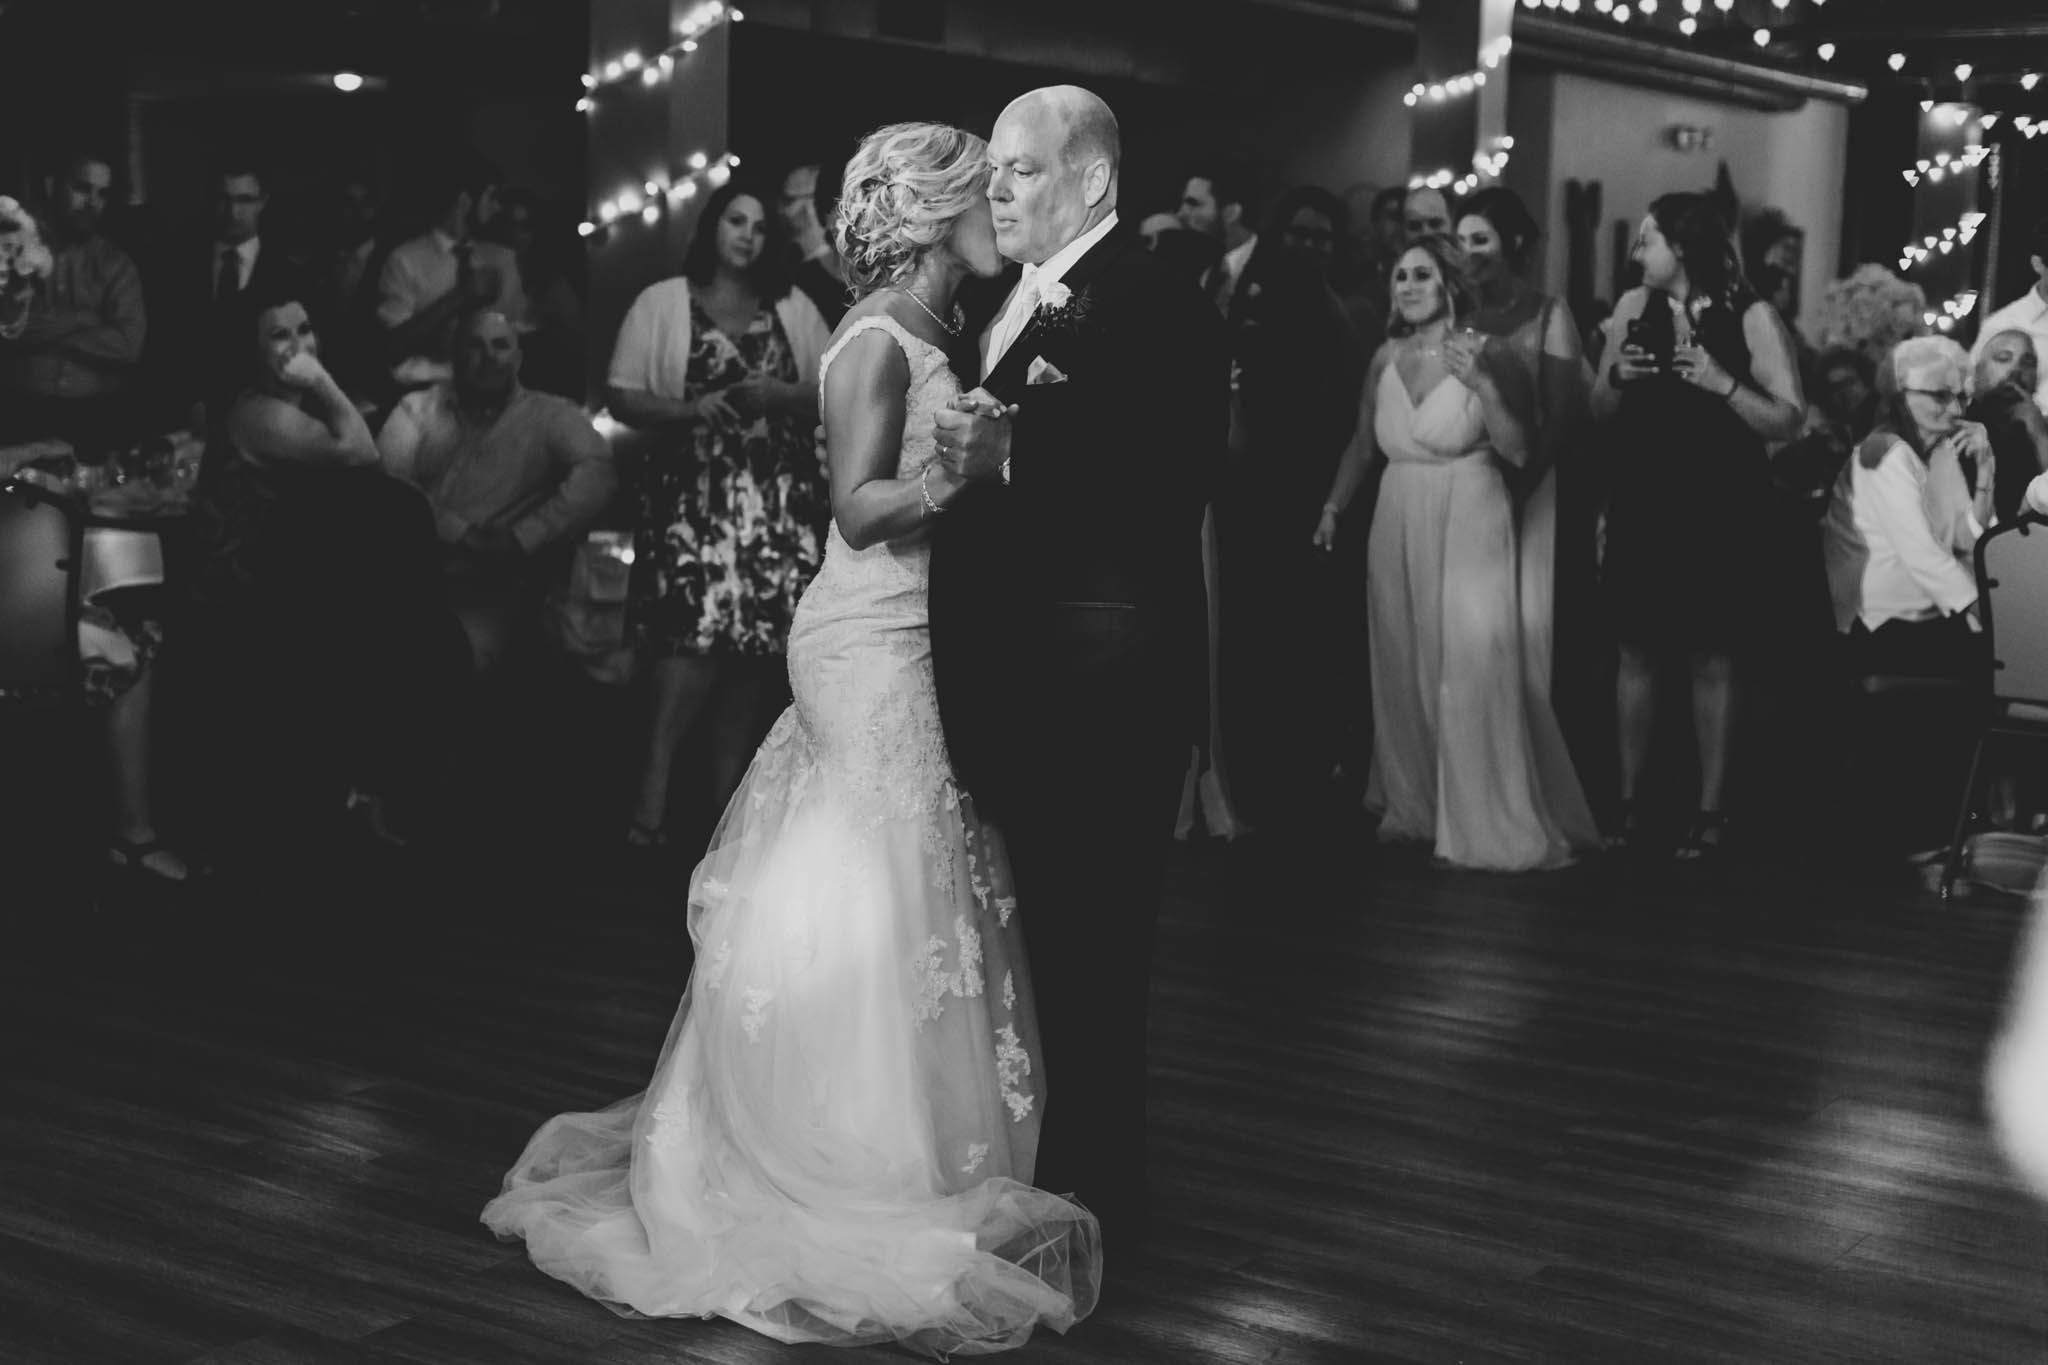 Jillian VanZytveld Photography - Grand Rapids Lifestyle Wedding Photography - 198.jpg